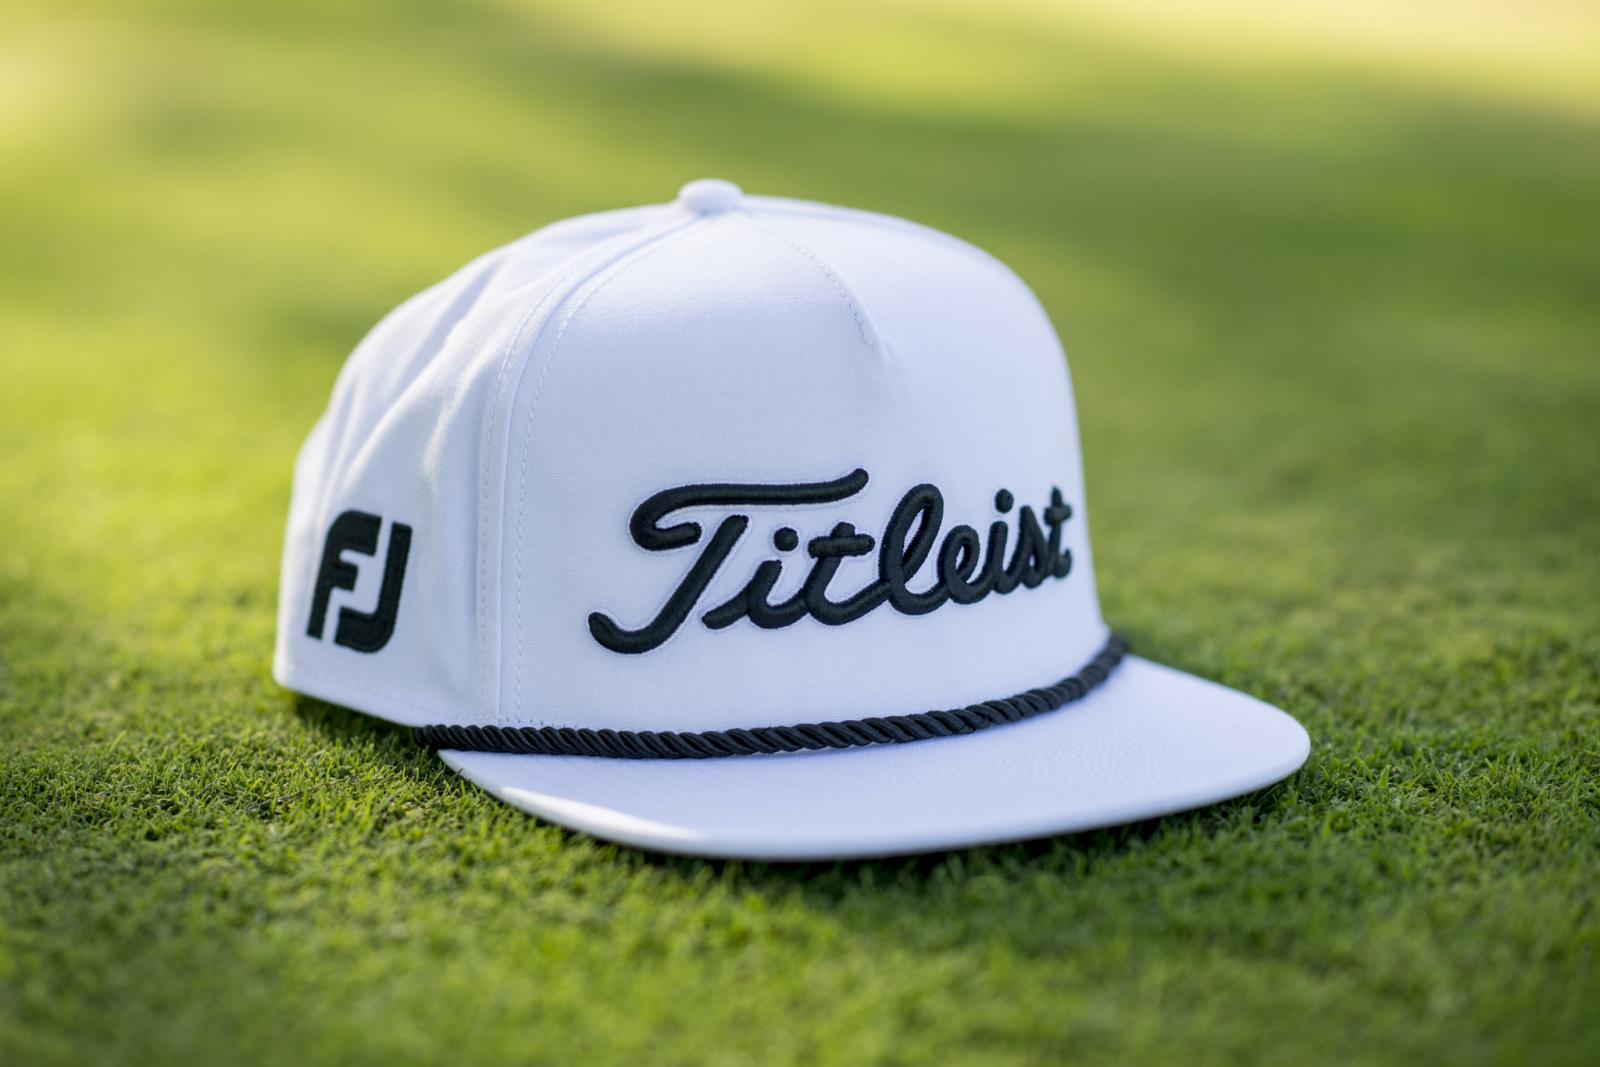 Titleist Introduces Titleist Tour Rope Flat Bill Hat Collection ... bbfc989a9c4